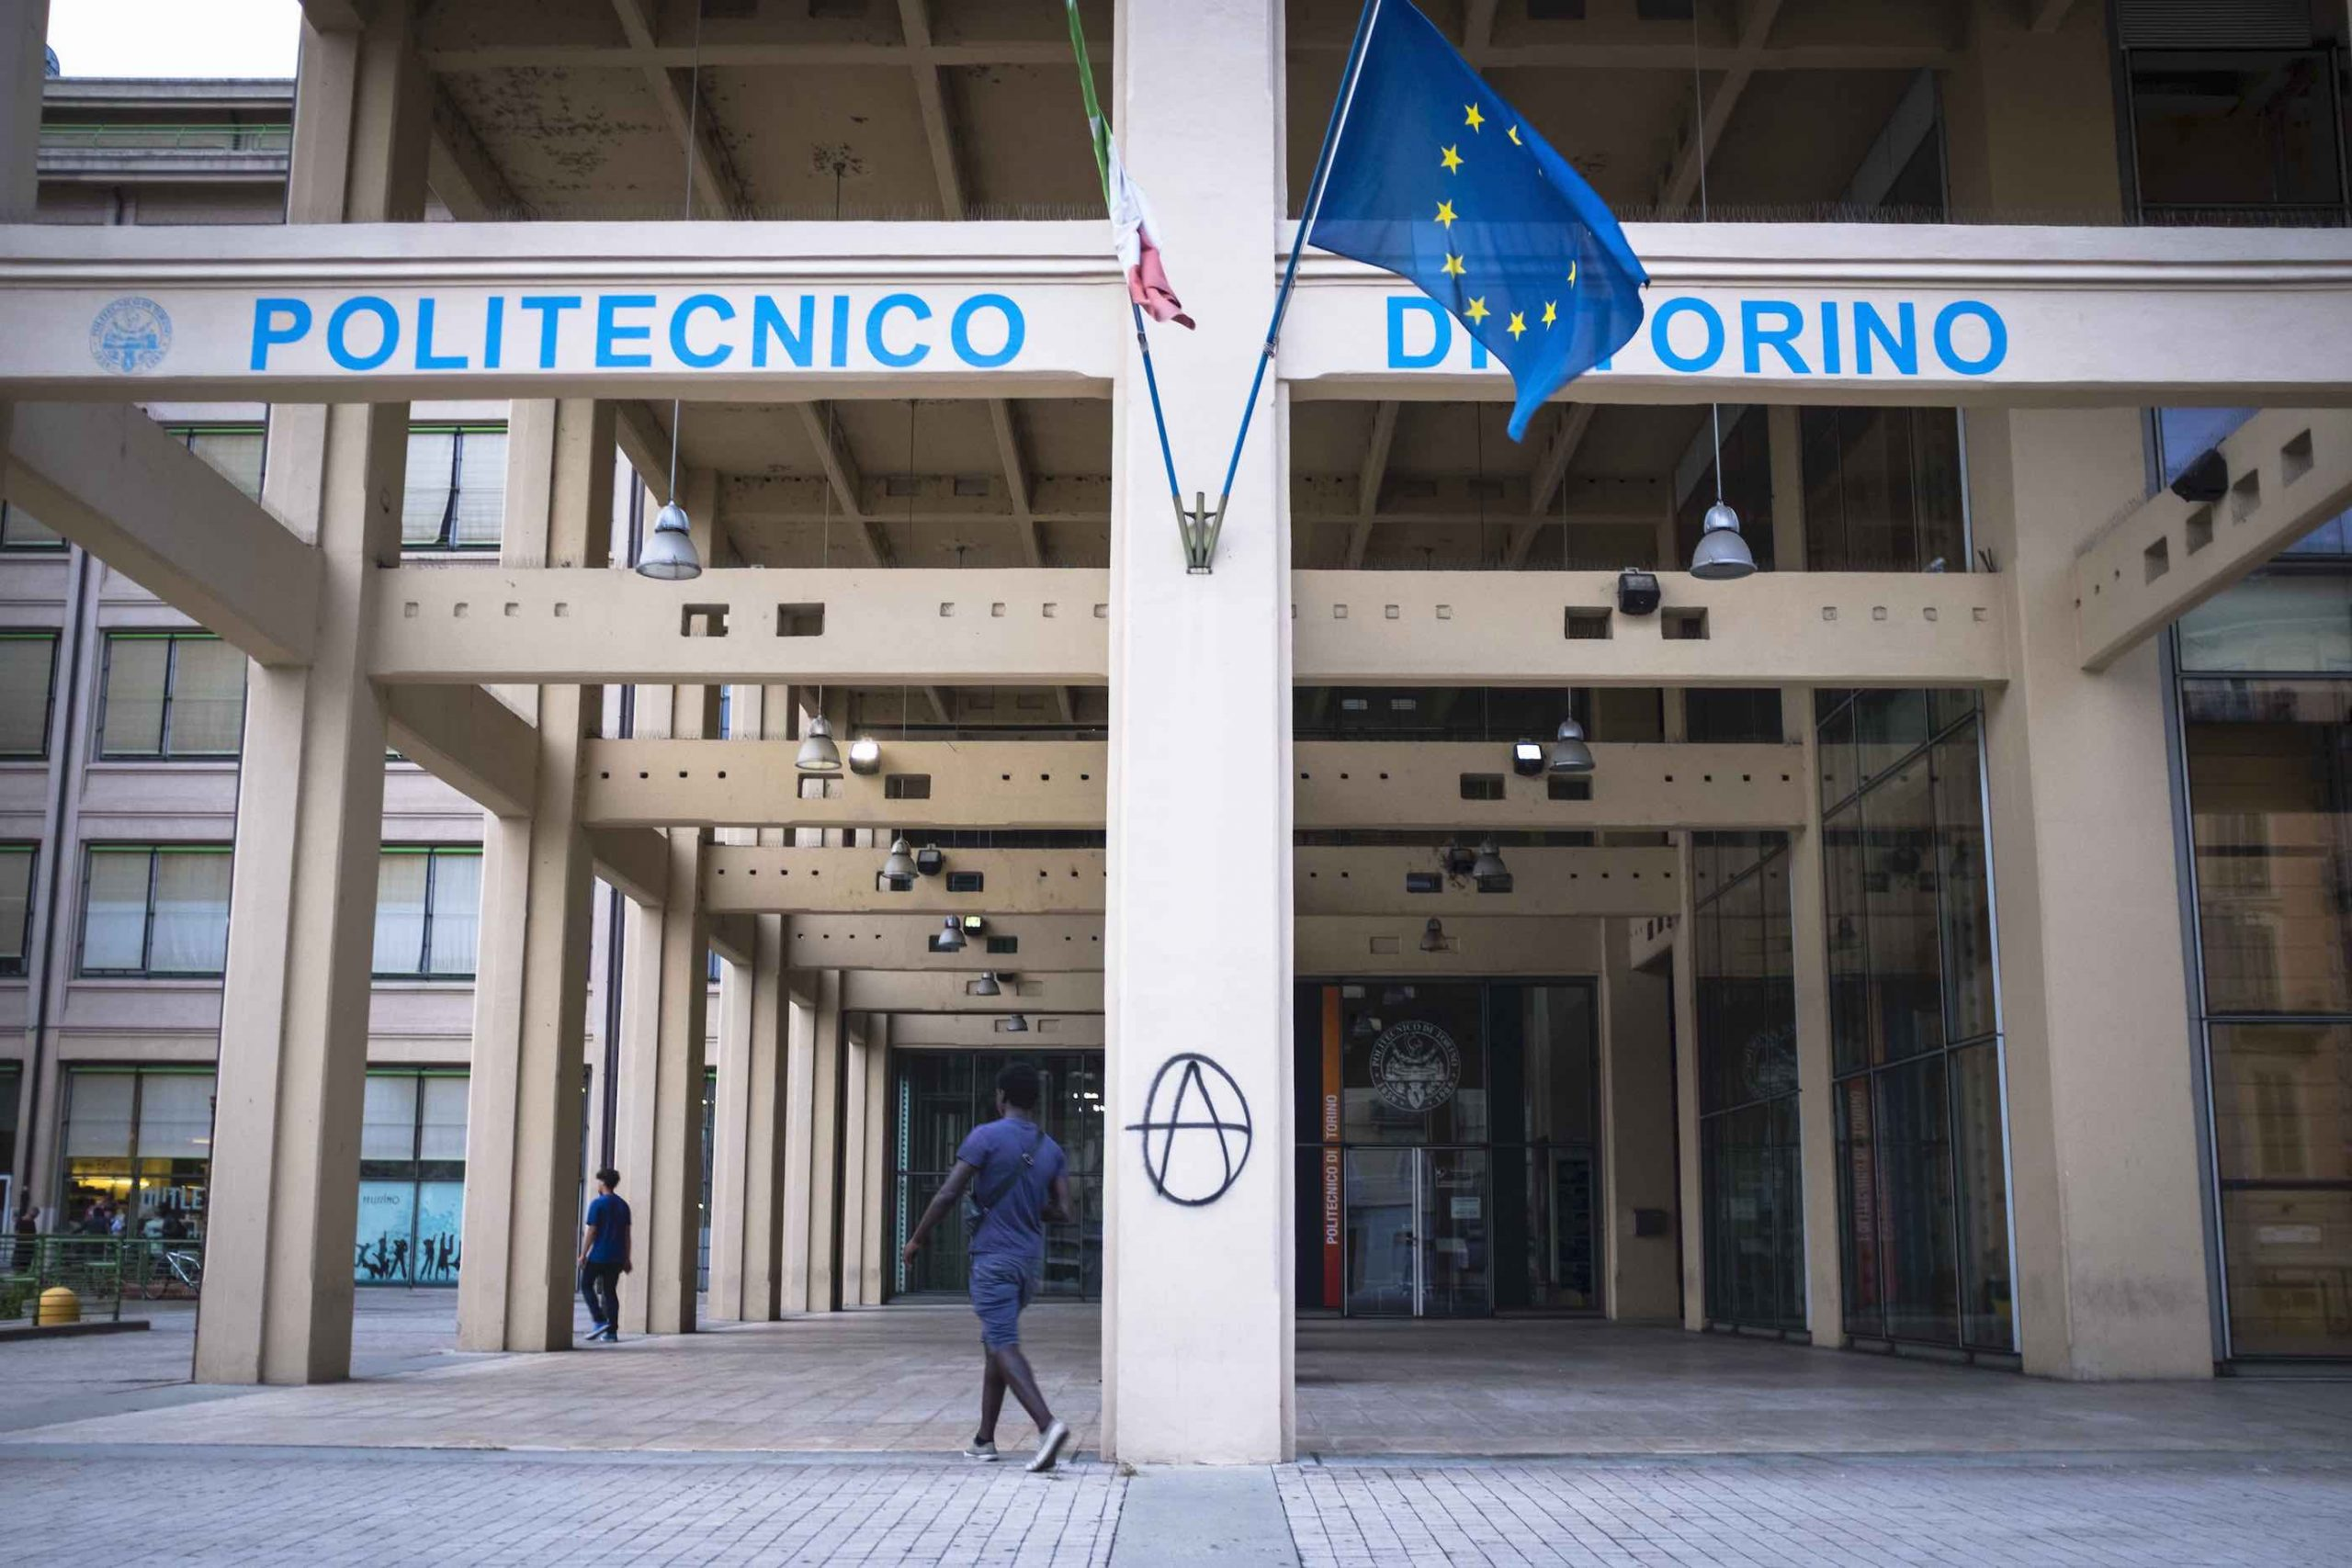 Multicultural Italy. Lingotto, September 2019.